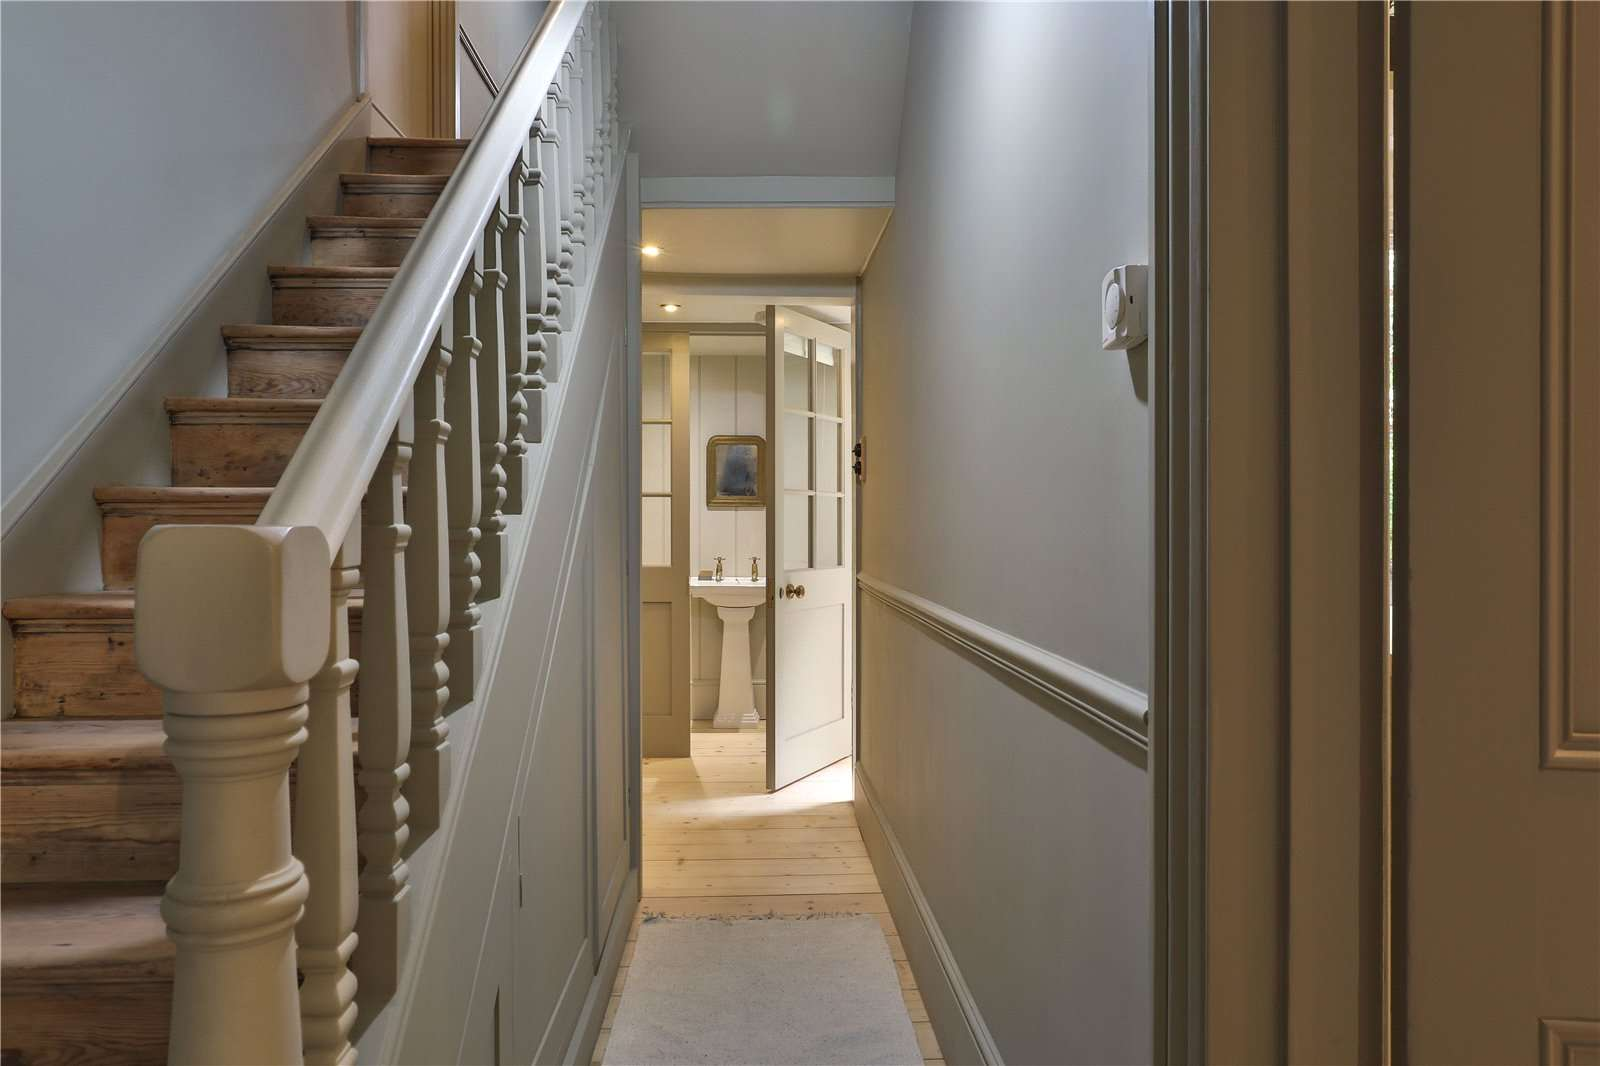 An elegantly-proportioned Victorian house on Woodstock Road in Oxford - Image Gallery 11 Hallway